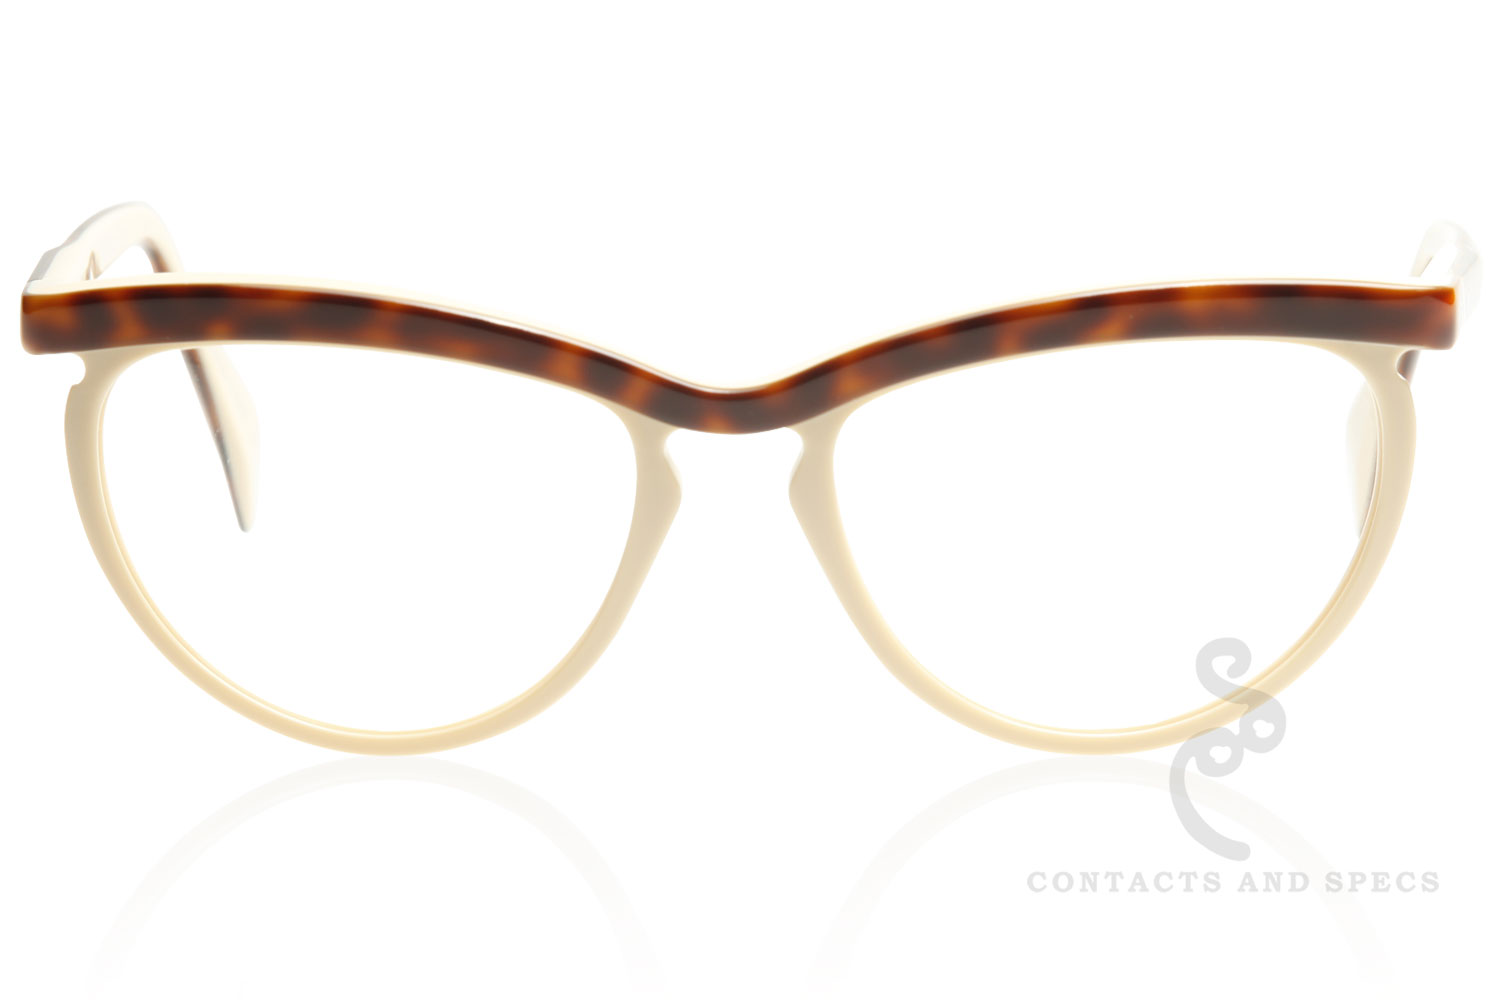 Claire Goldsmith Eyewear Wynne